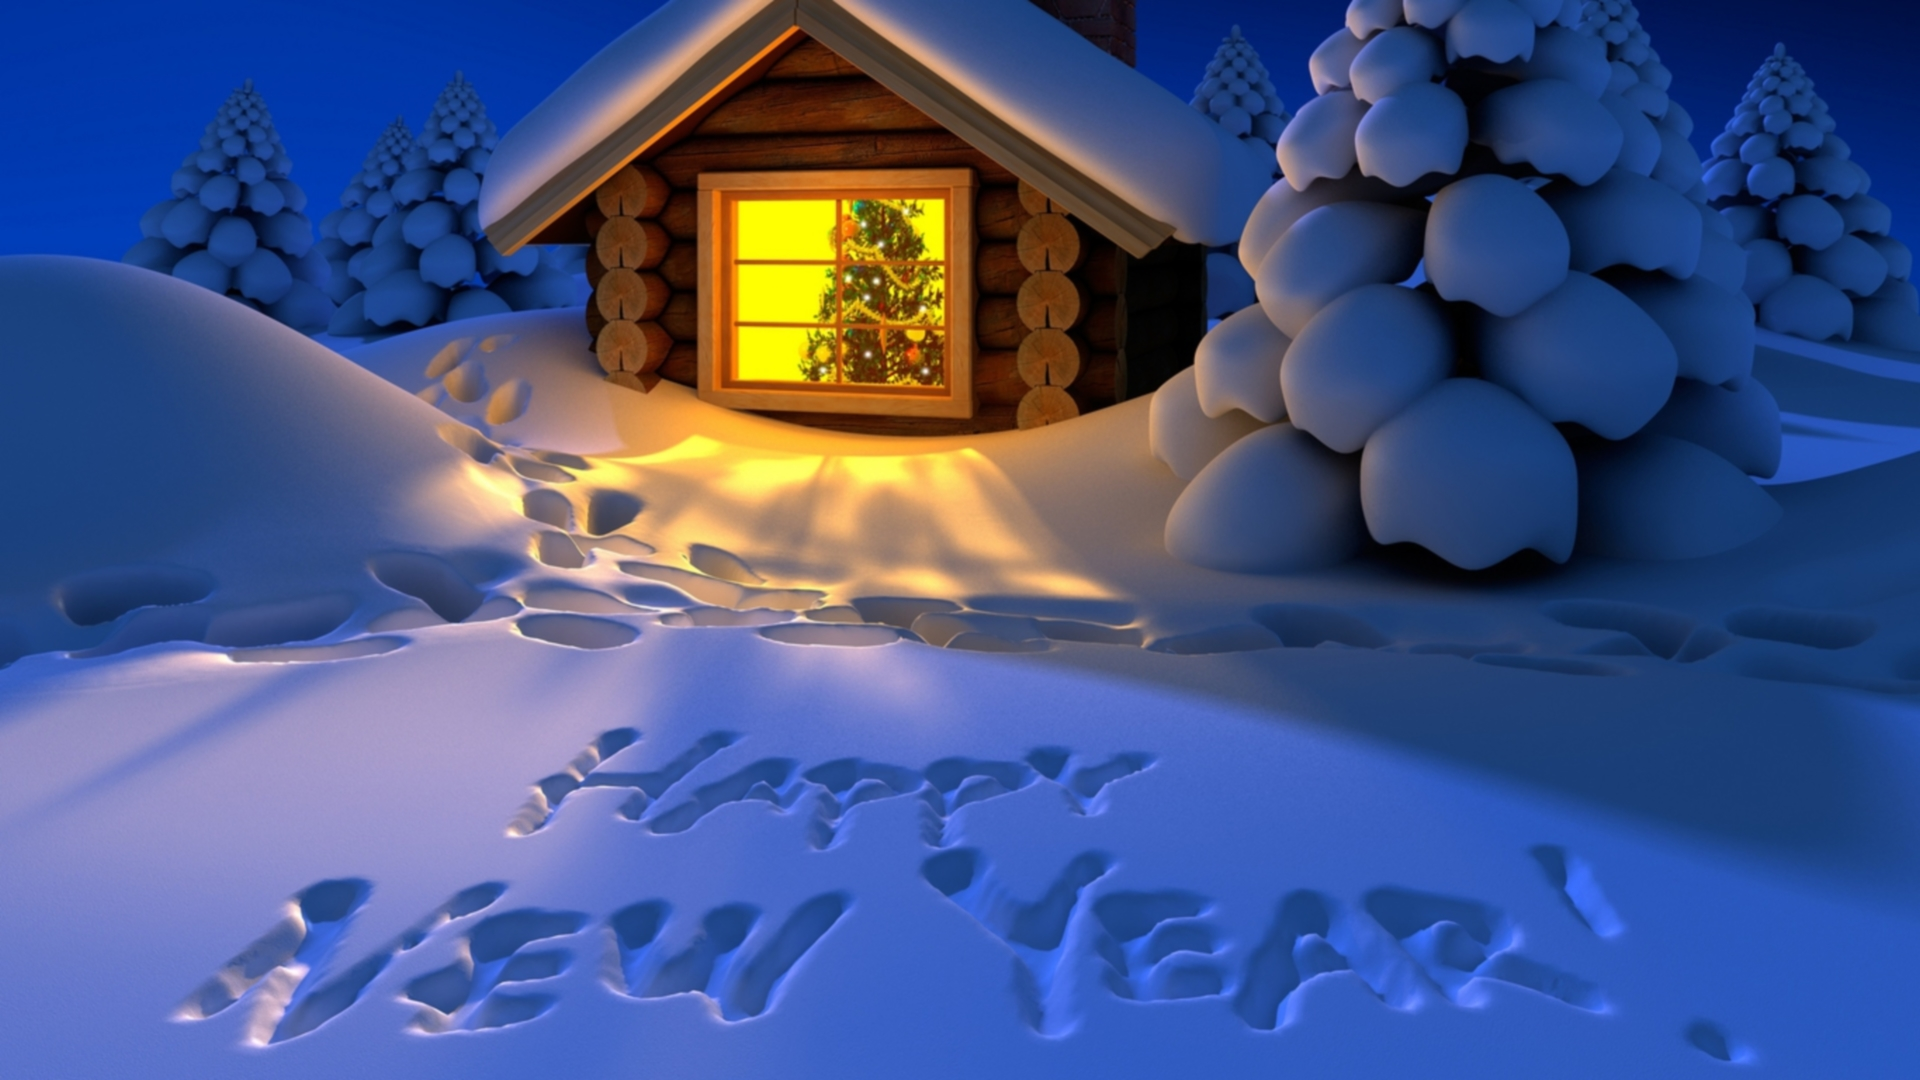 New Year HD Wallpaper | Background Image | 1920x1080 | ID:469690 ...